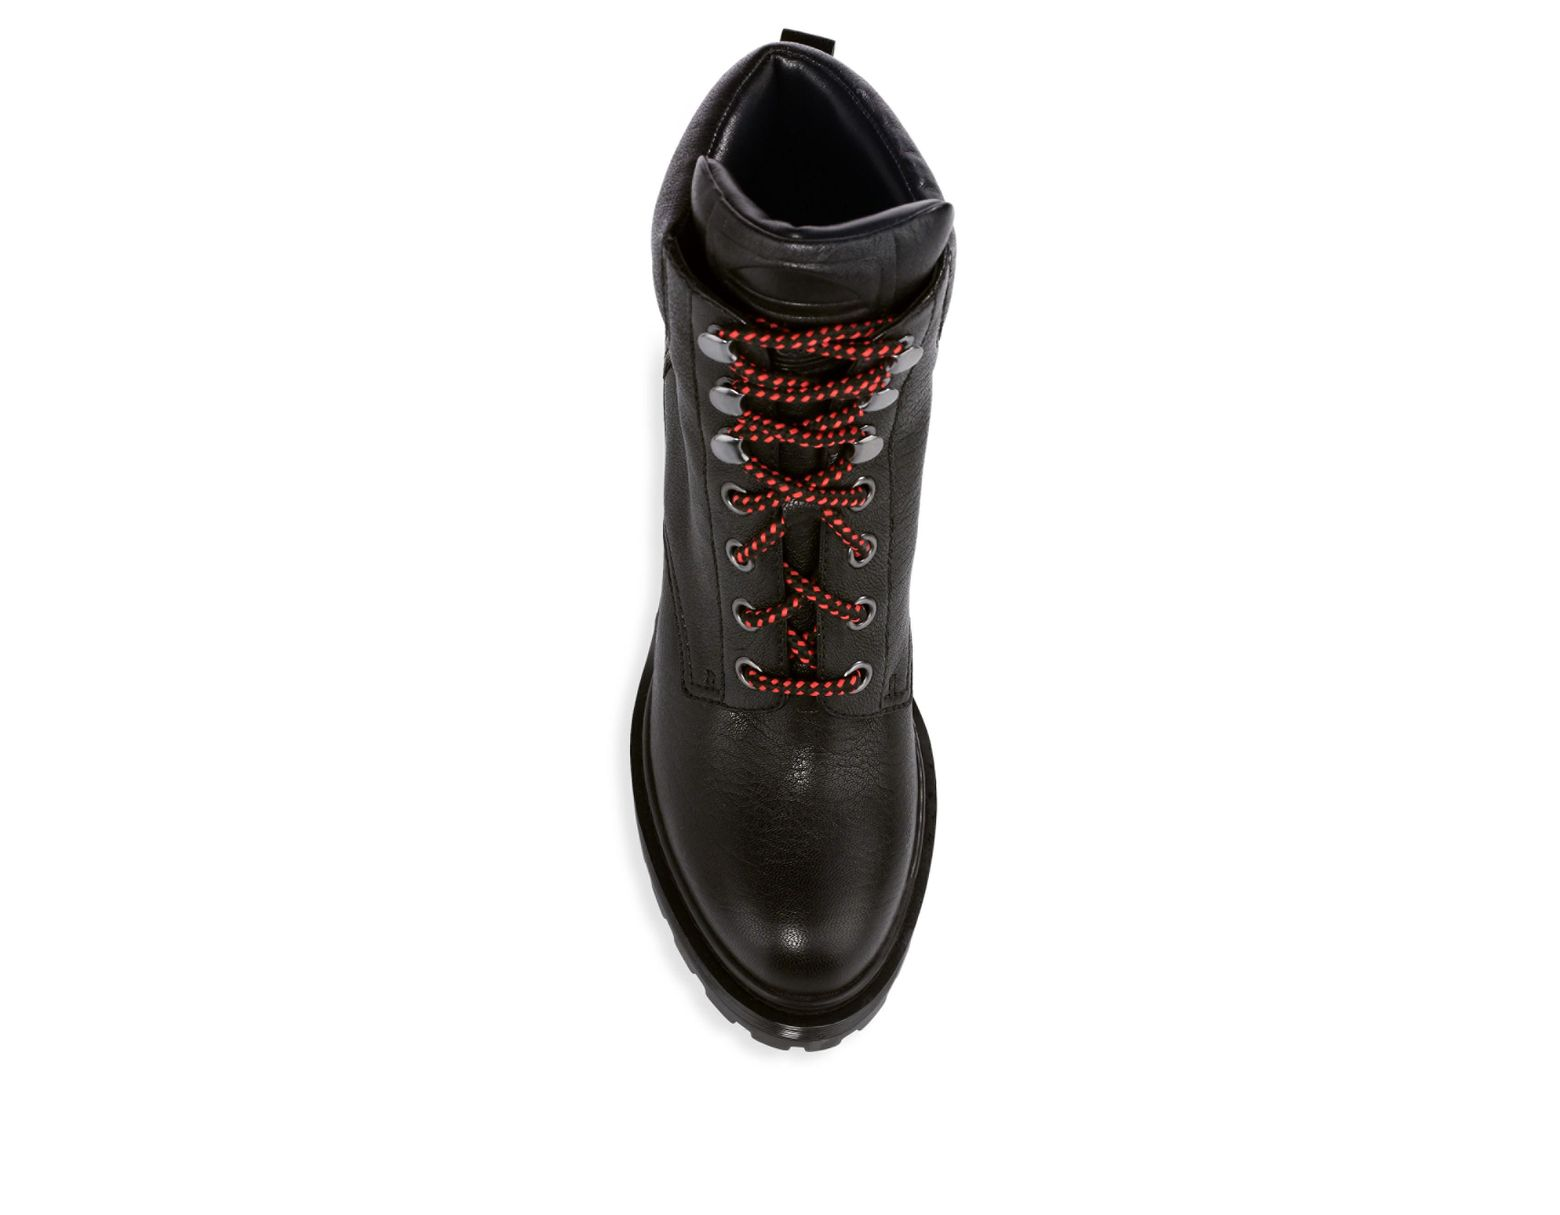 e8f5d68efe4 Women's Black Crosby Leather Hiking Boots